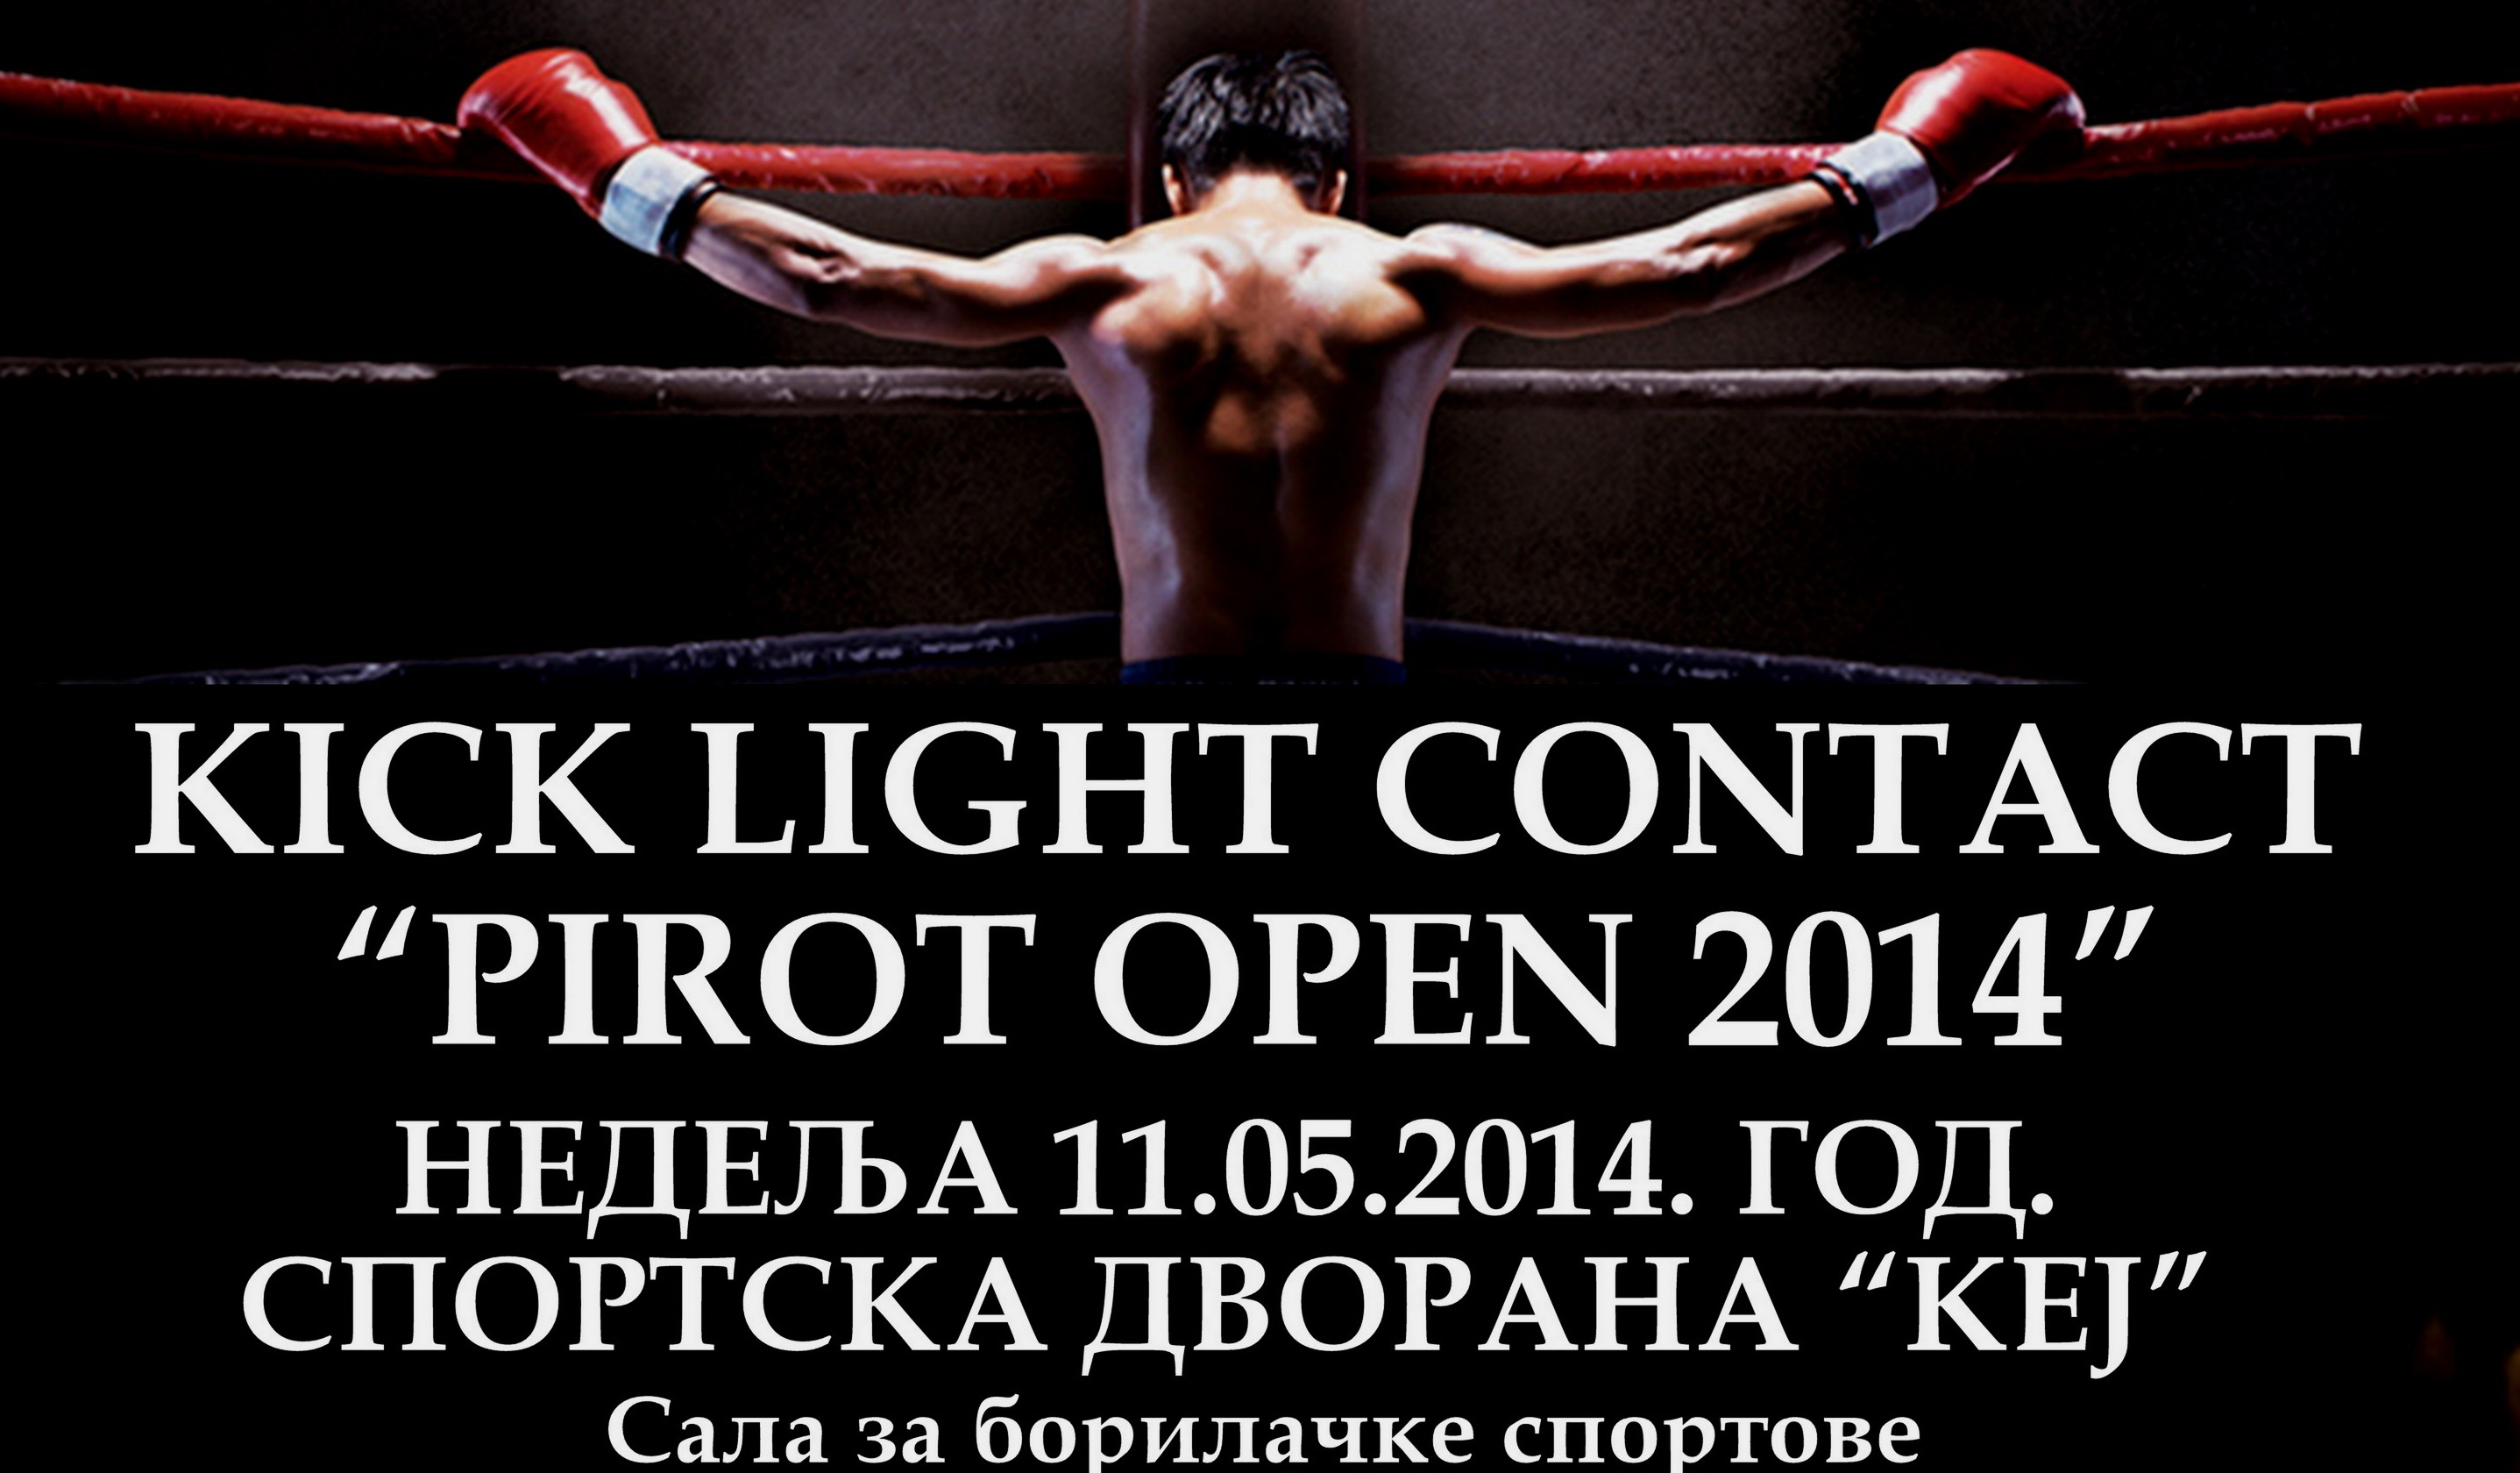 "Photo of Kik boks turnir ""Pirot open 2014"""